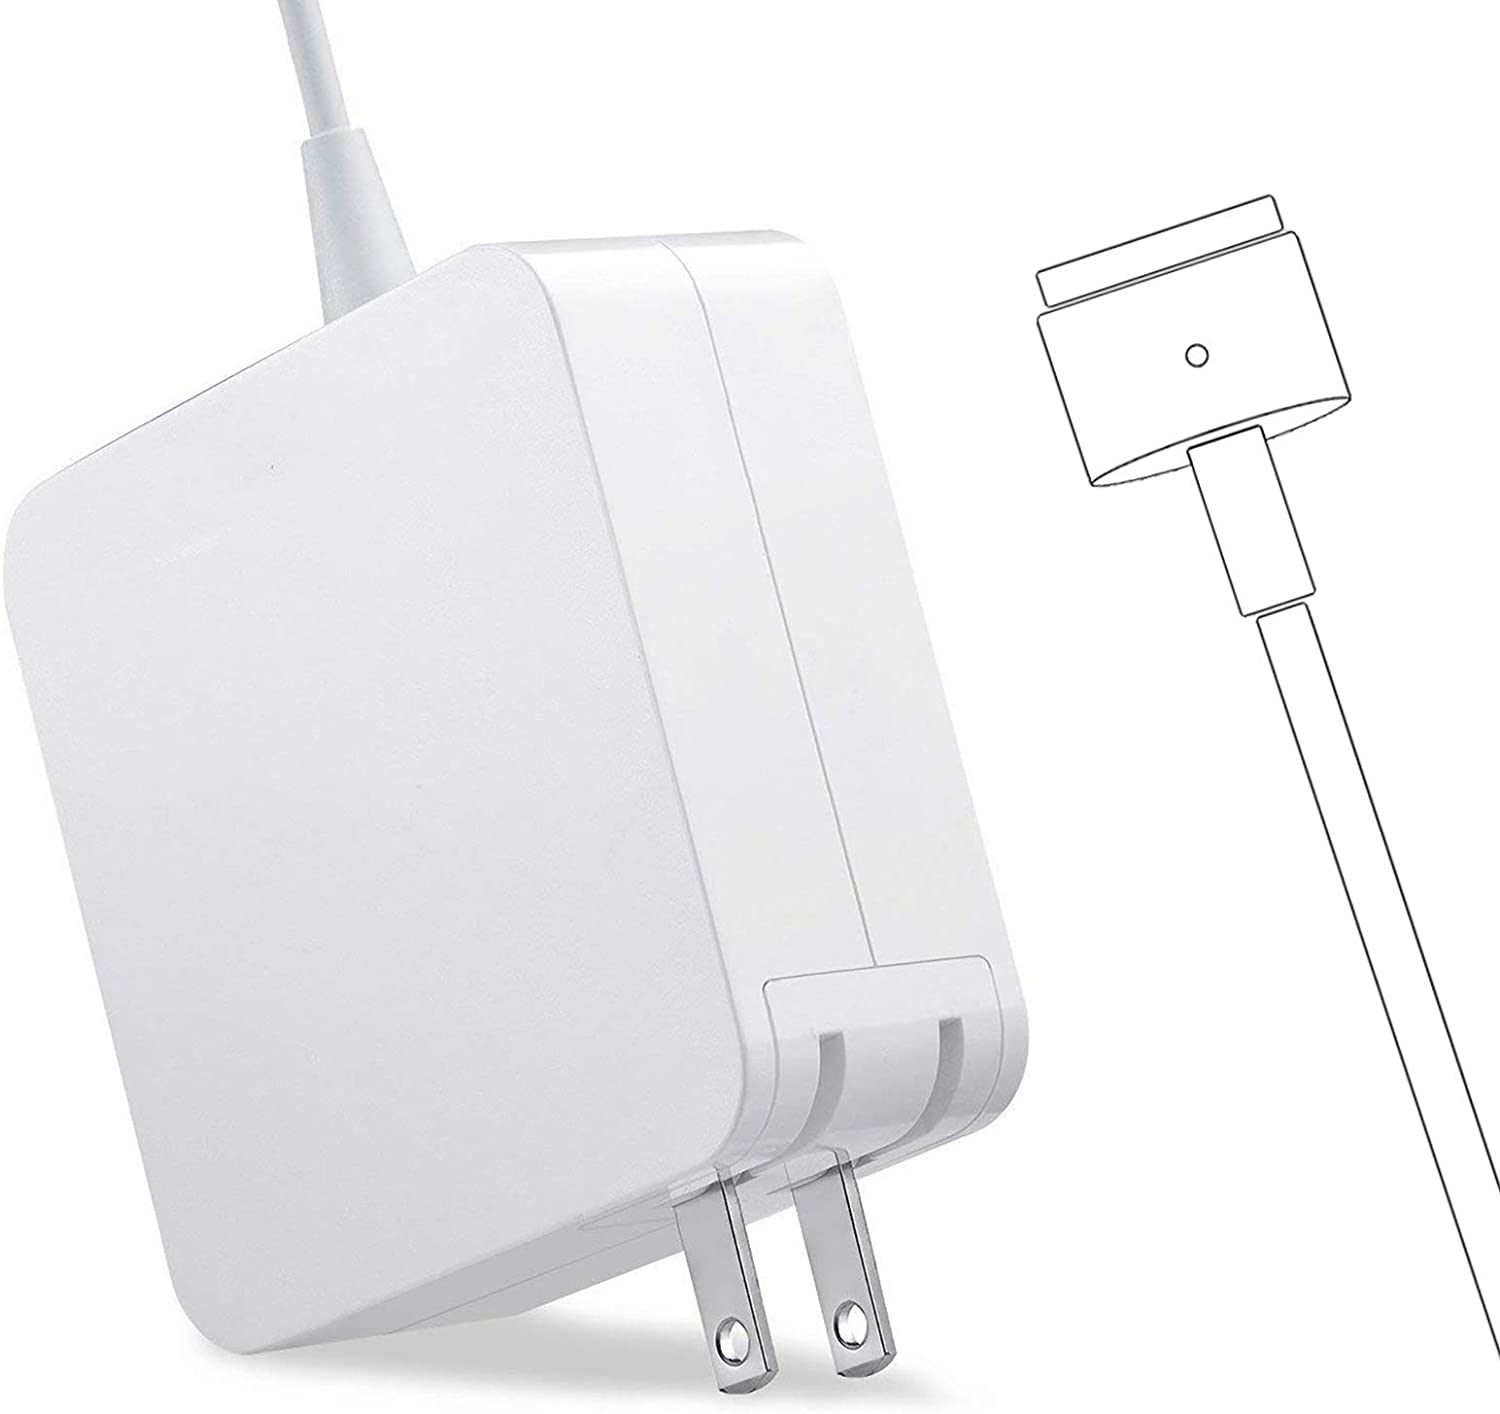 Universal Charger, Mac Book Pro Charger 60W Power Adapter Mac Charger Compatible with 13-inch Laptop Mac Book Pro Models(Introduced in 2012 Through 2015)